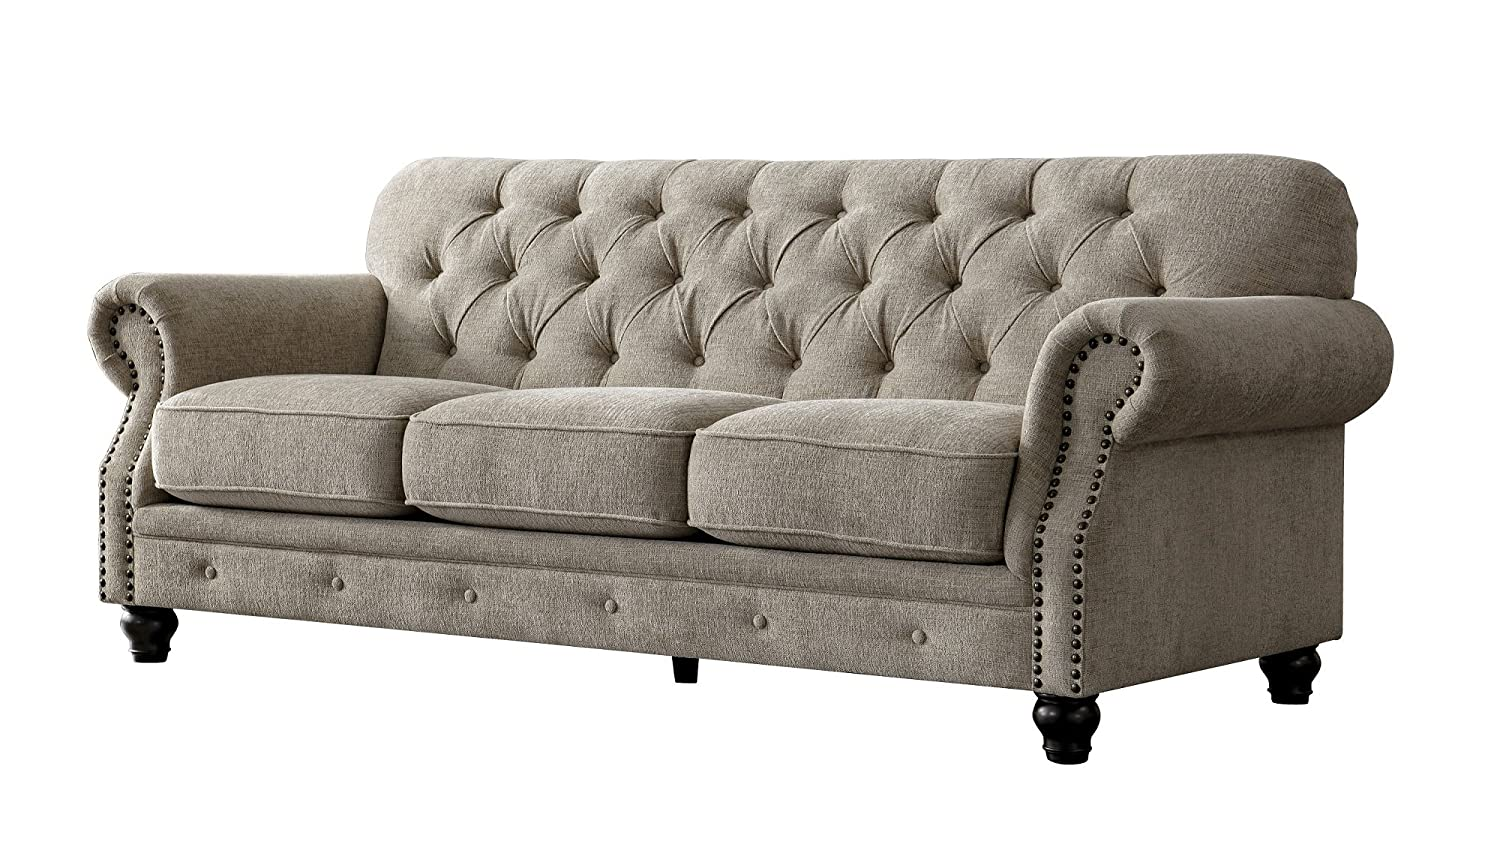 Acanva Chesterfield Chenille Living Room Sofa Couch, Almond